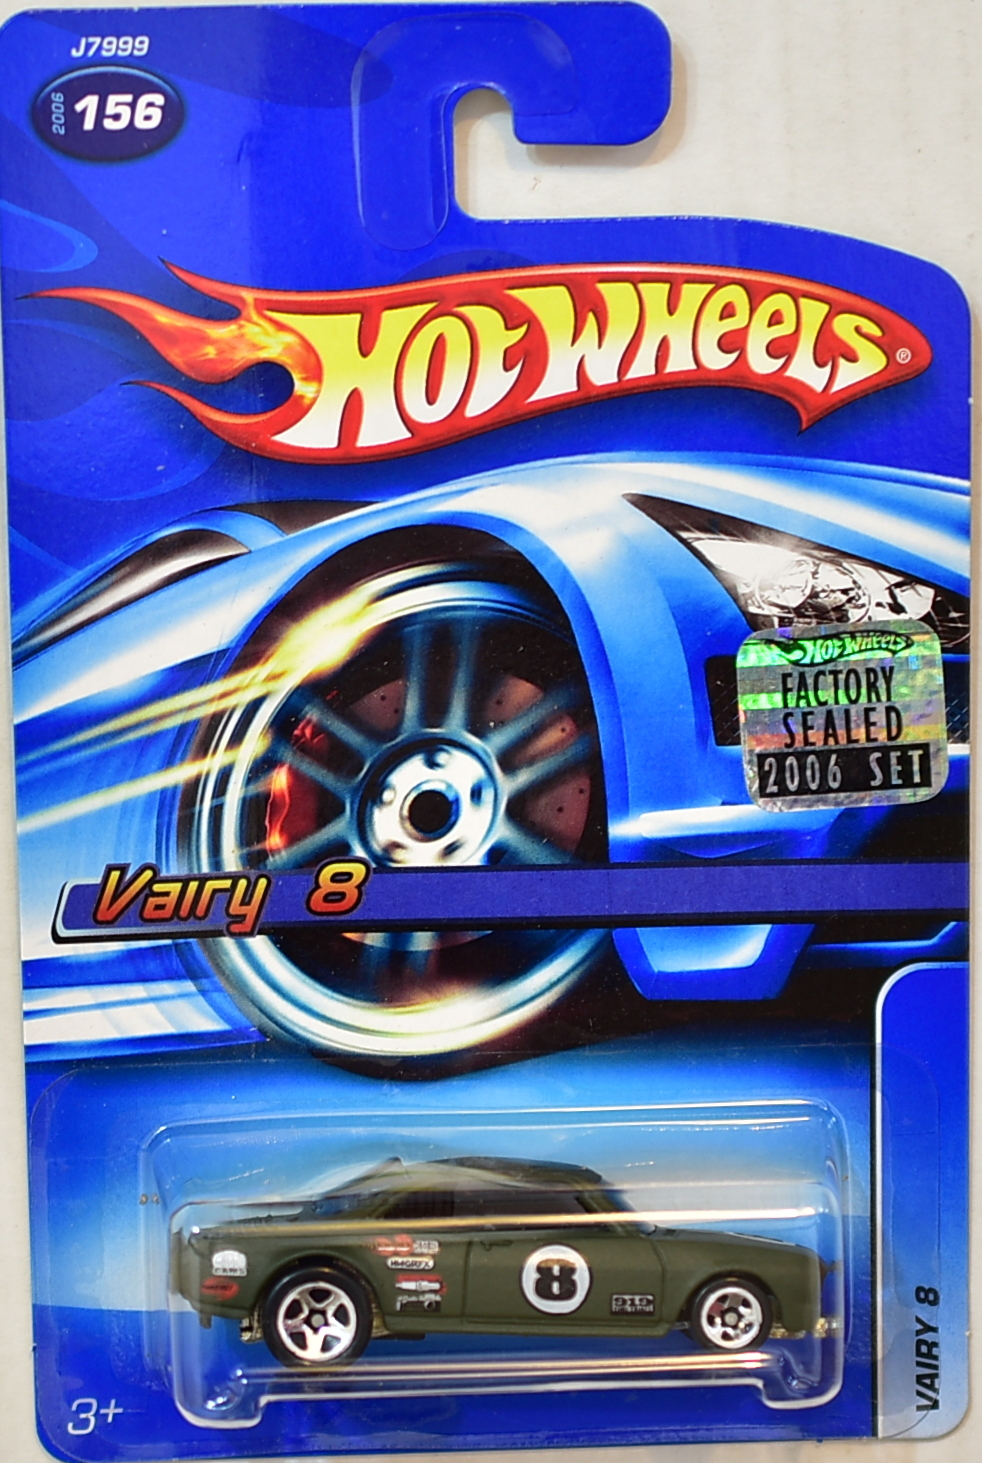 HOT WHEELS 2006 VAIRY 8 #156 FACTORY SEALED